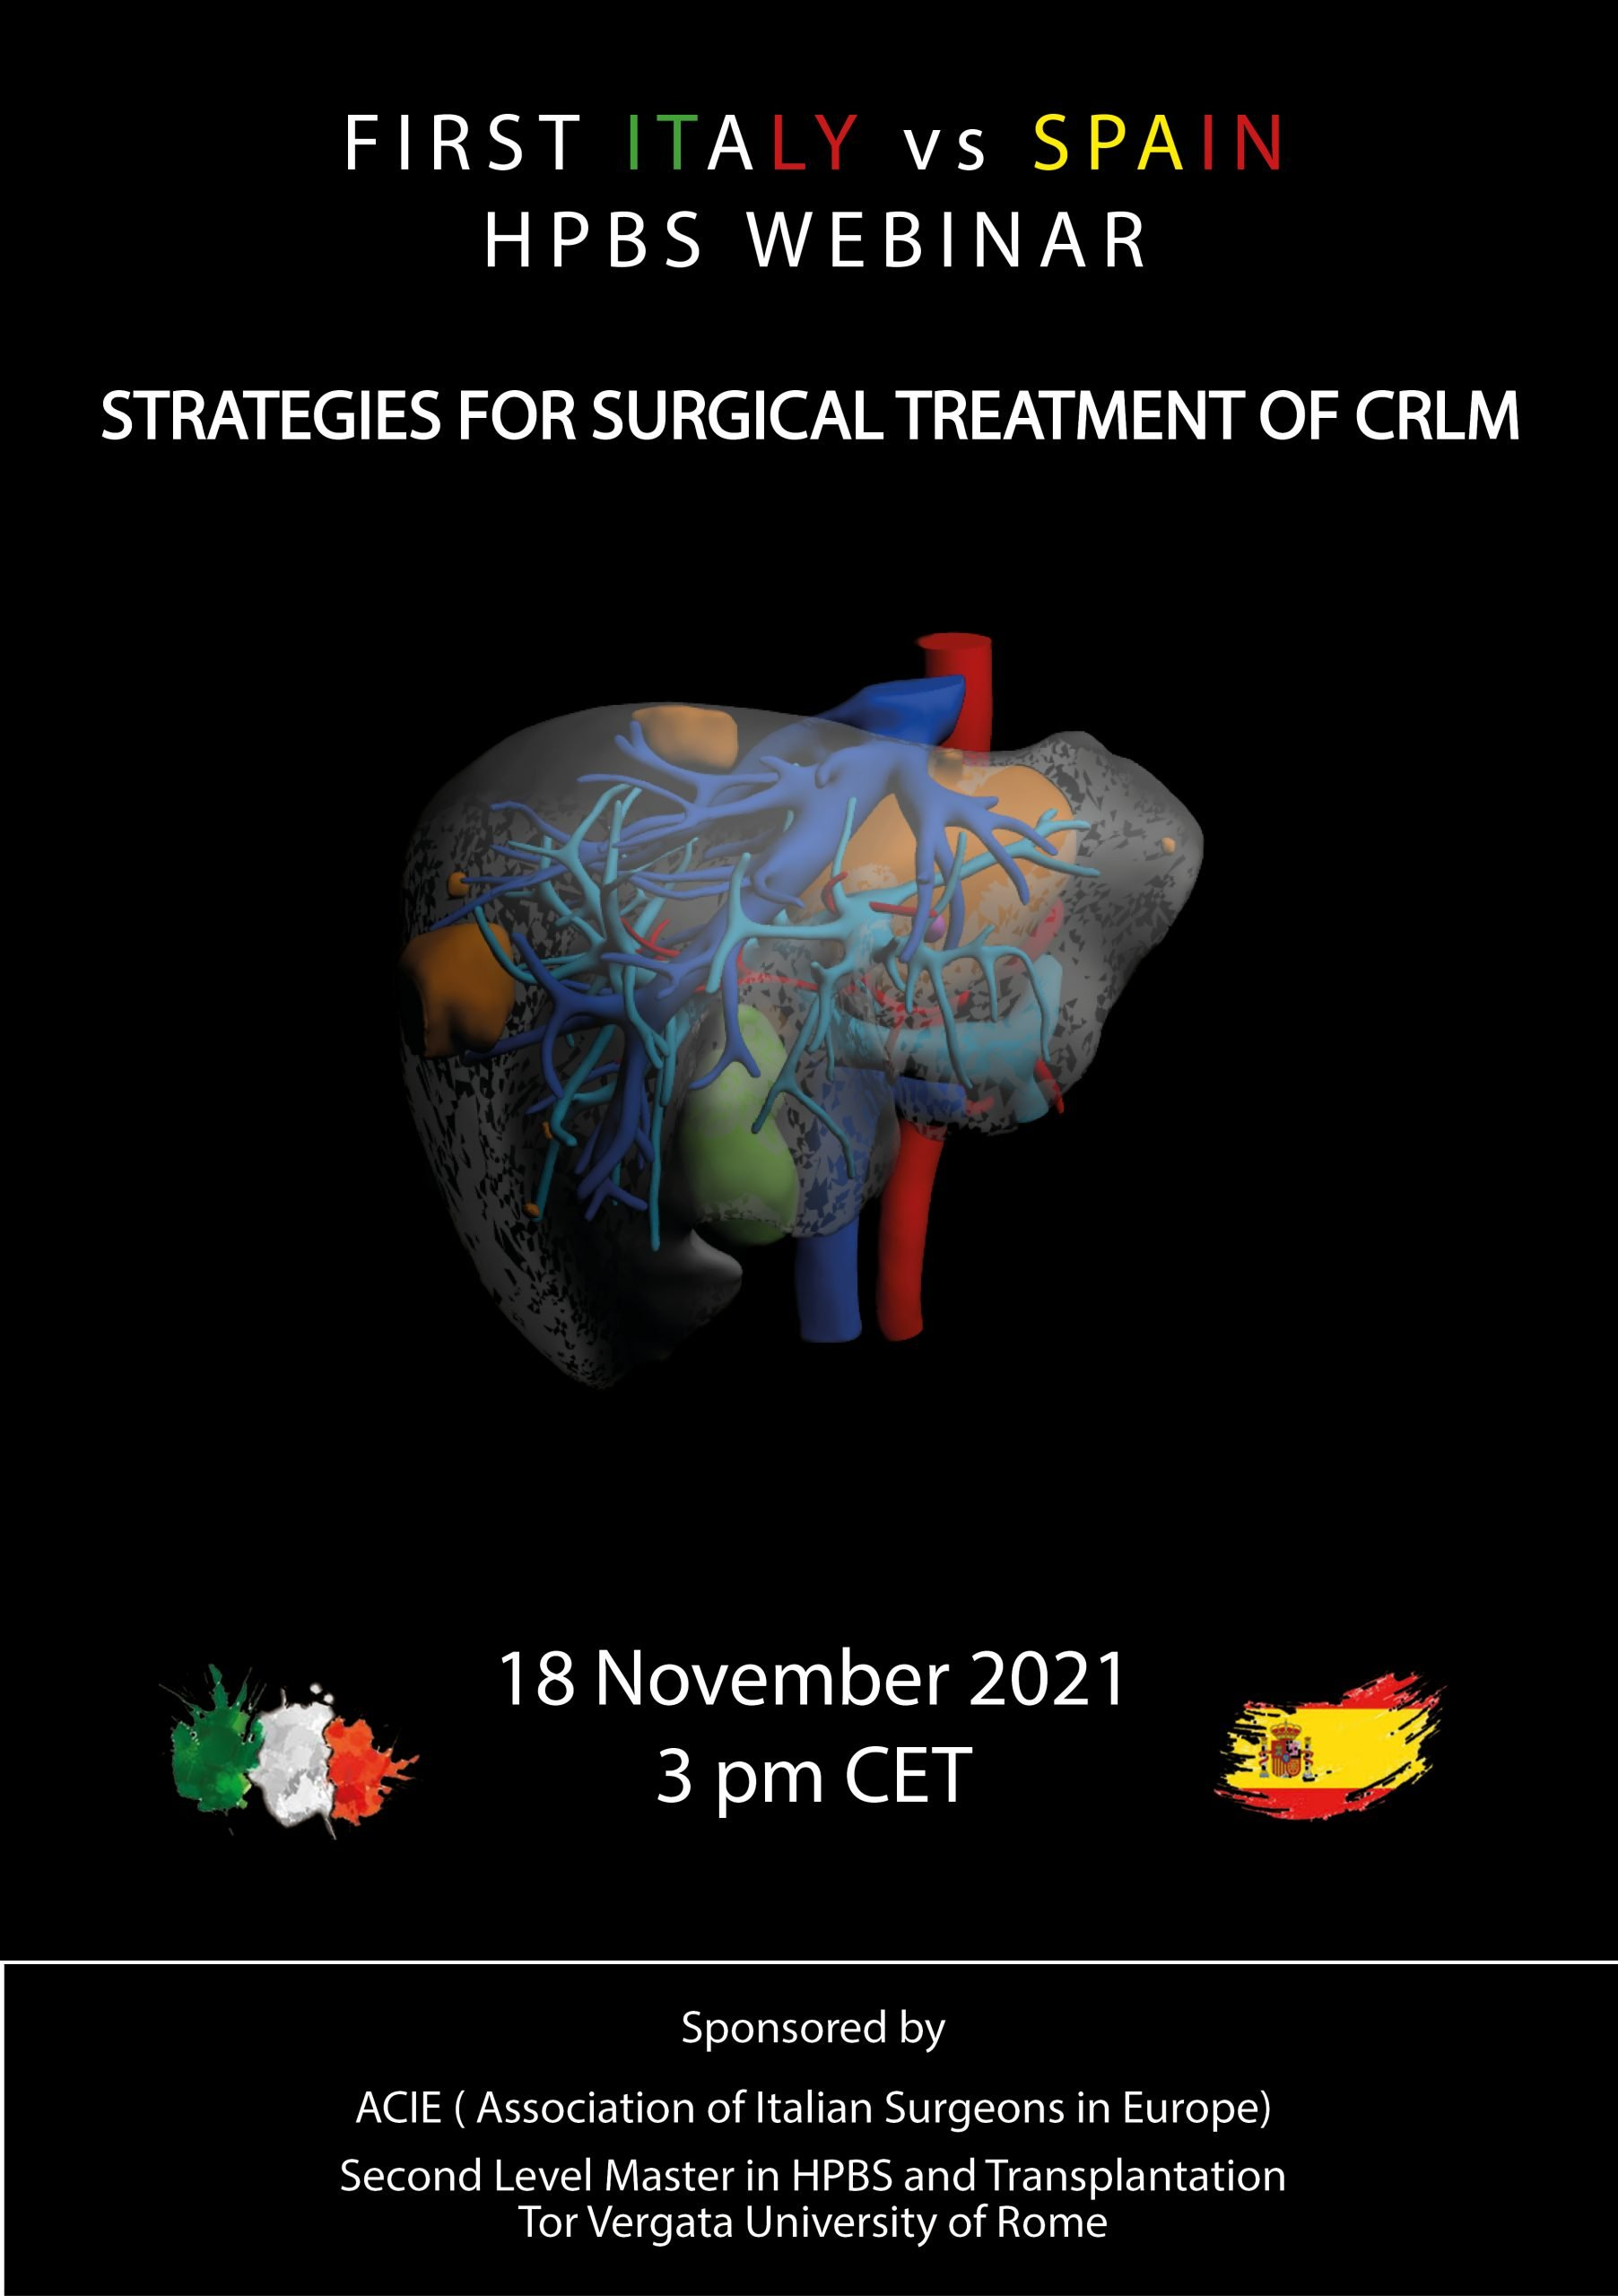 STRATEGIES FOR SURGICAL TREATMENT OF CRLM - WEBINAR